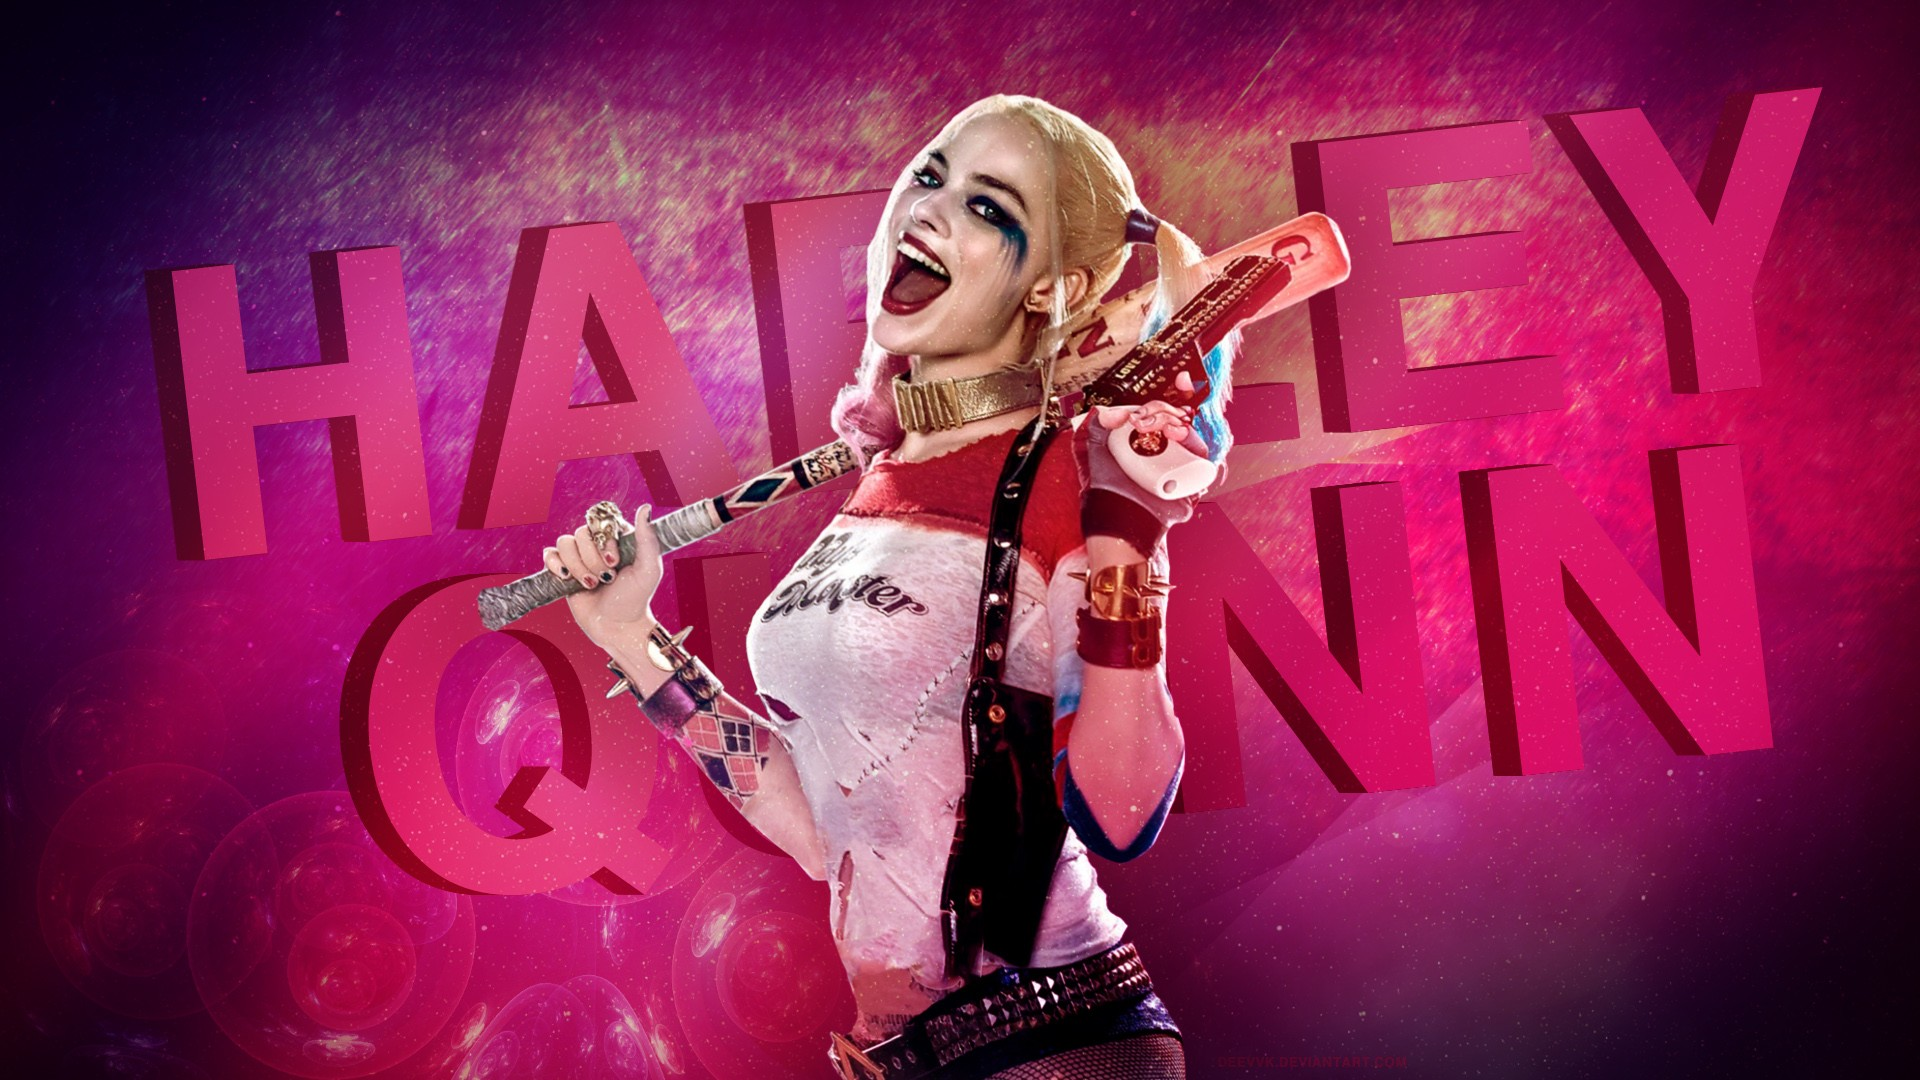 Margot robbie harley quinn wallpaper download free cool - Harley quinn hd wallpapers for android ...